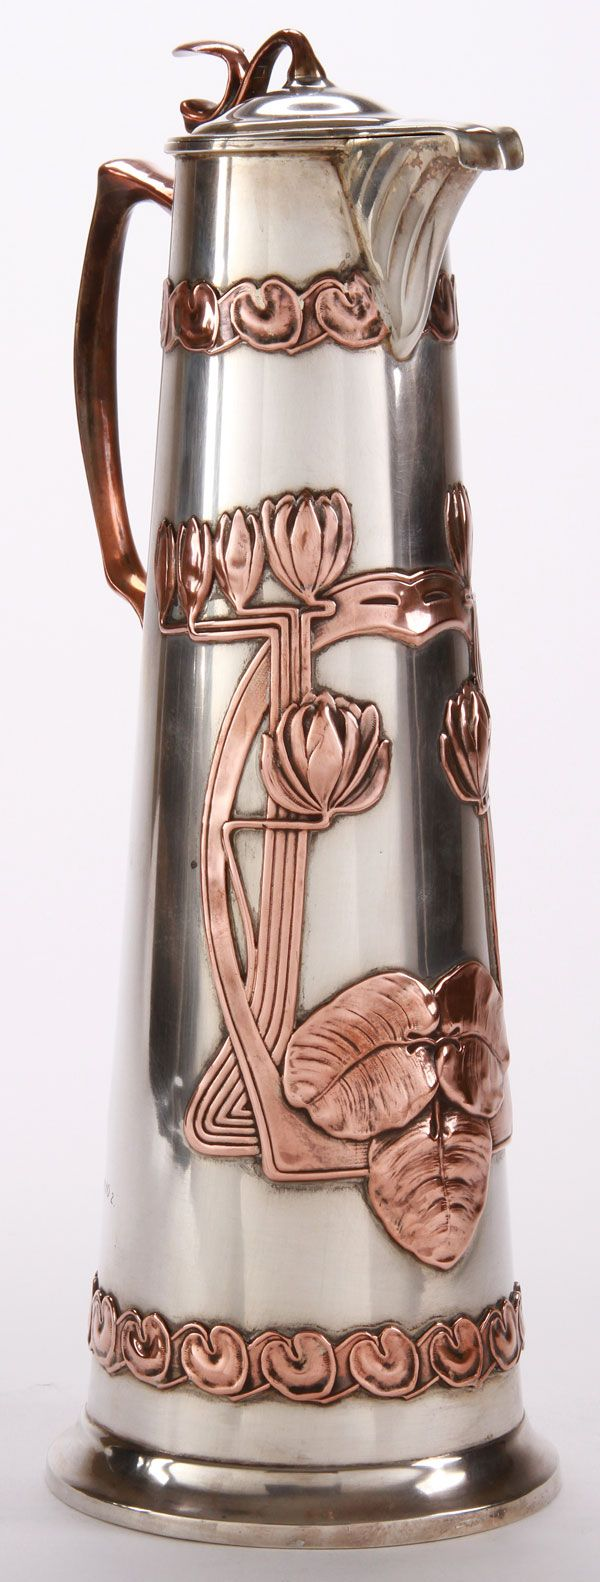 Large Russian Silver Art Nouveau Wine Carafe with Copper Plated Flowers.